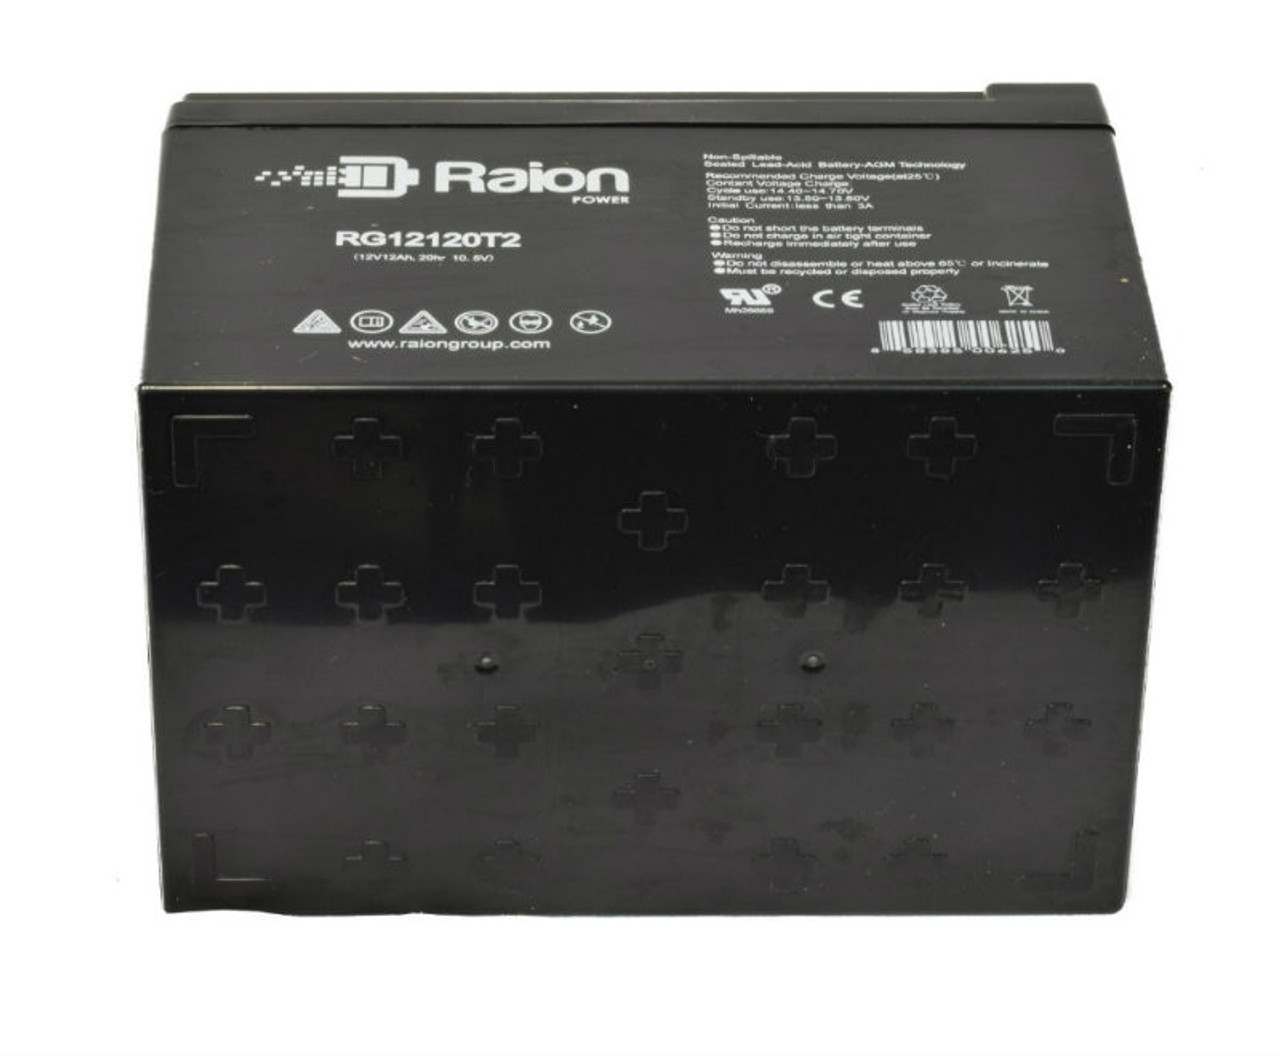 Raion Power RG12120T2 12V 12Ah Battery With Bottom Heat Dissipating Grips